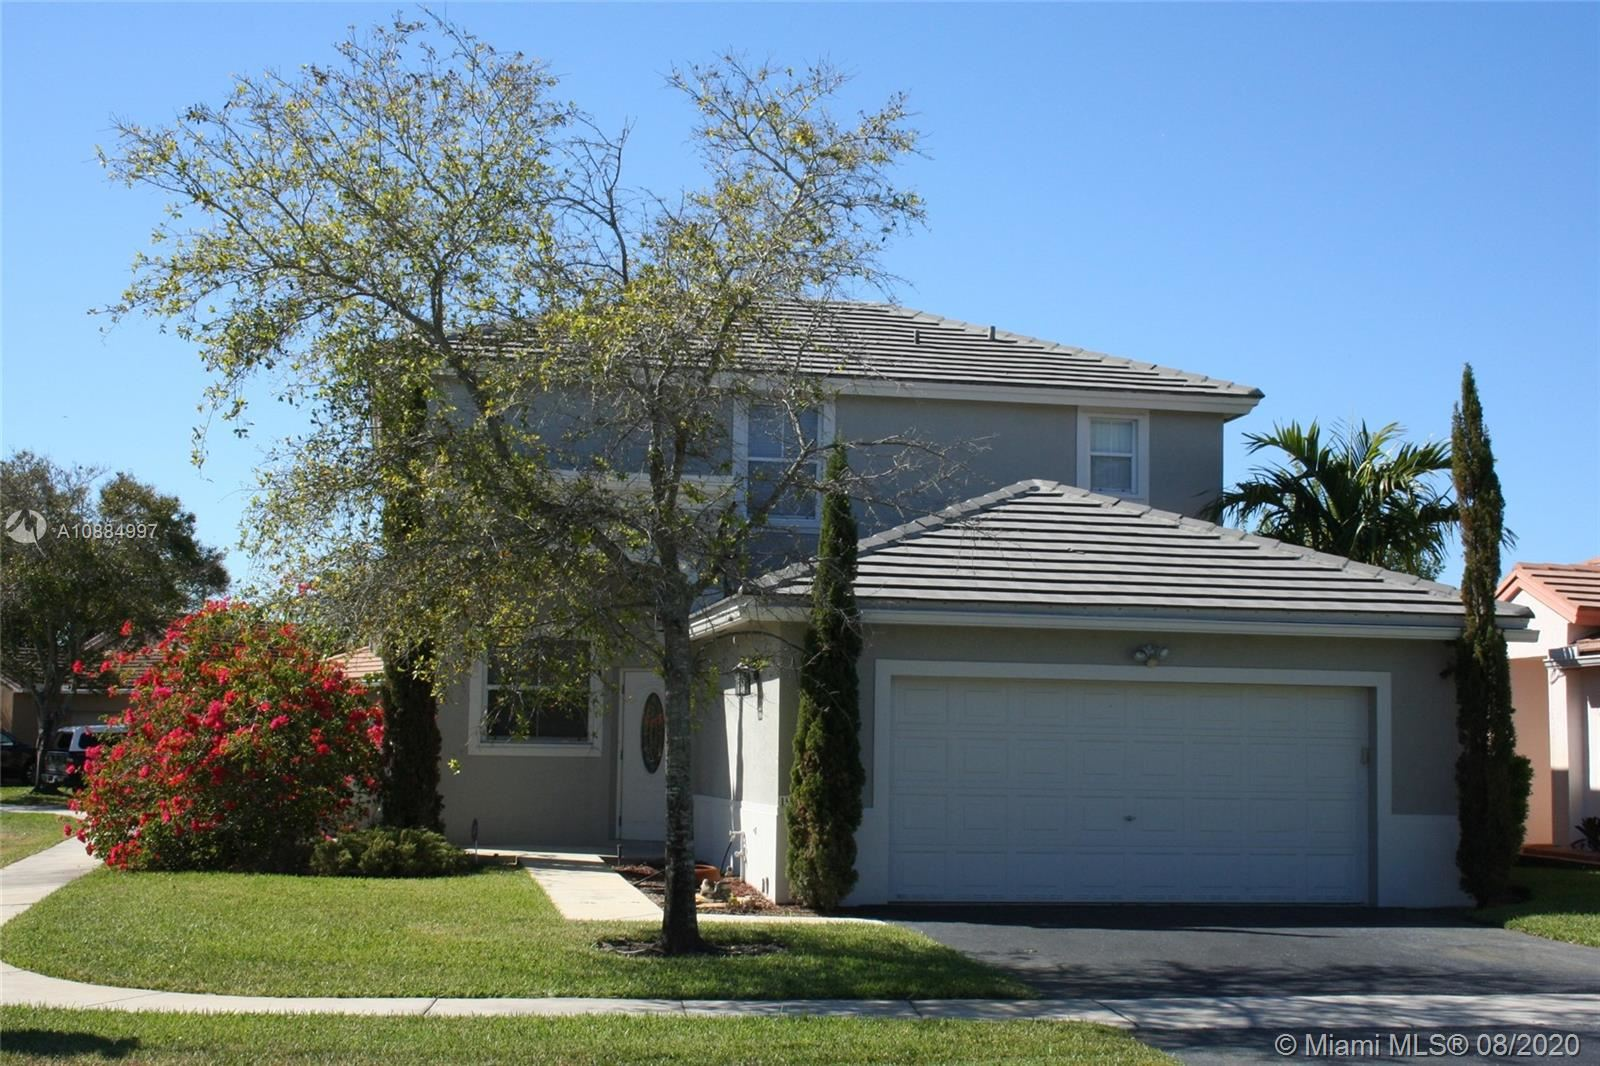 Photo for 1904 NW 185th Way, Pembroke Pines, FL 33029 (MLS # A10884997)